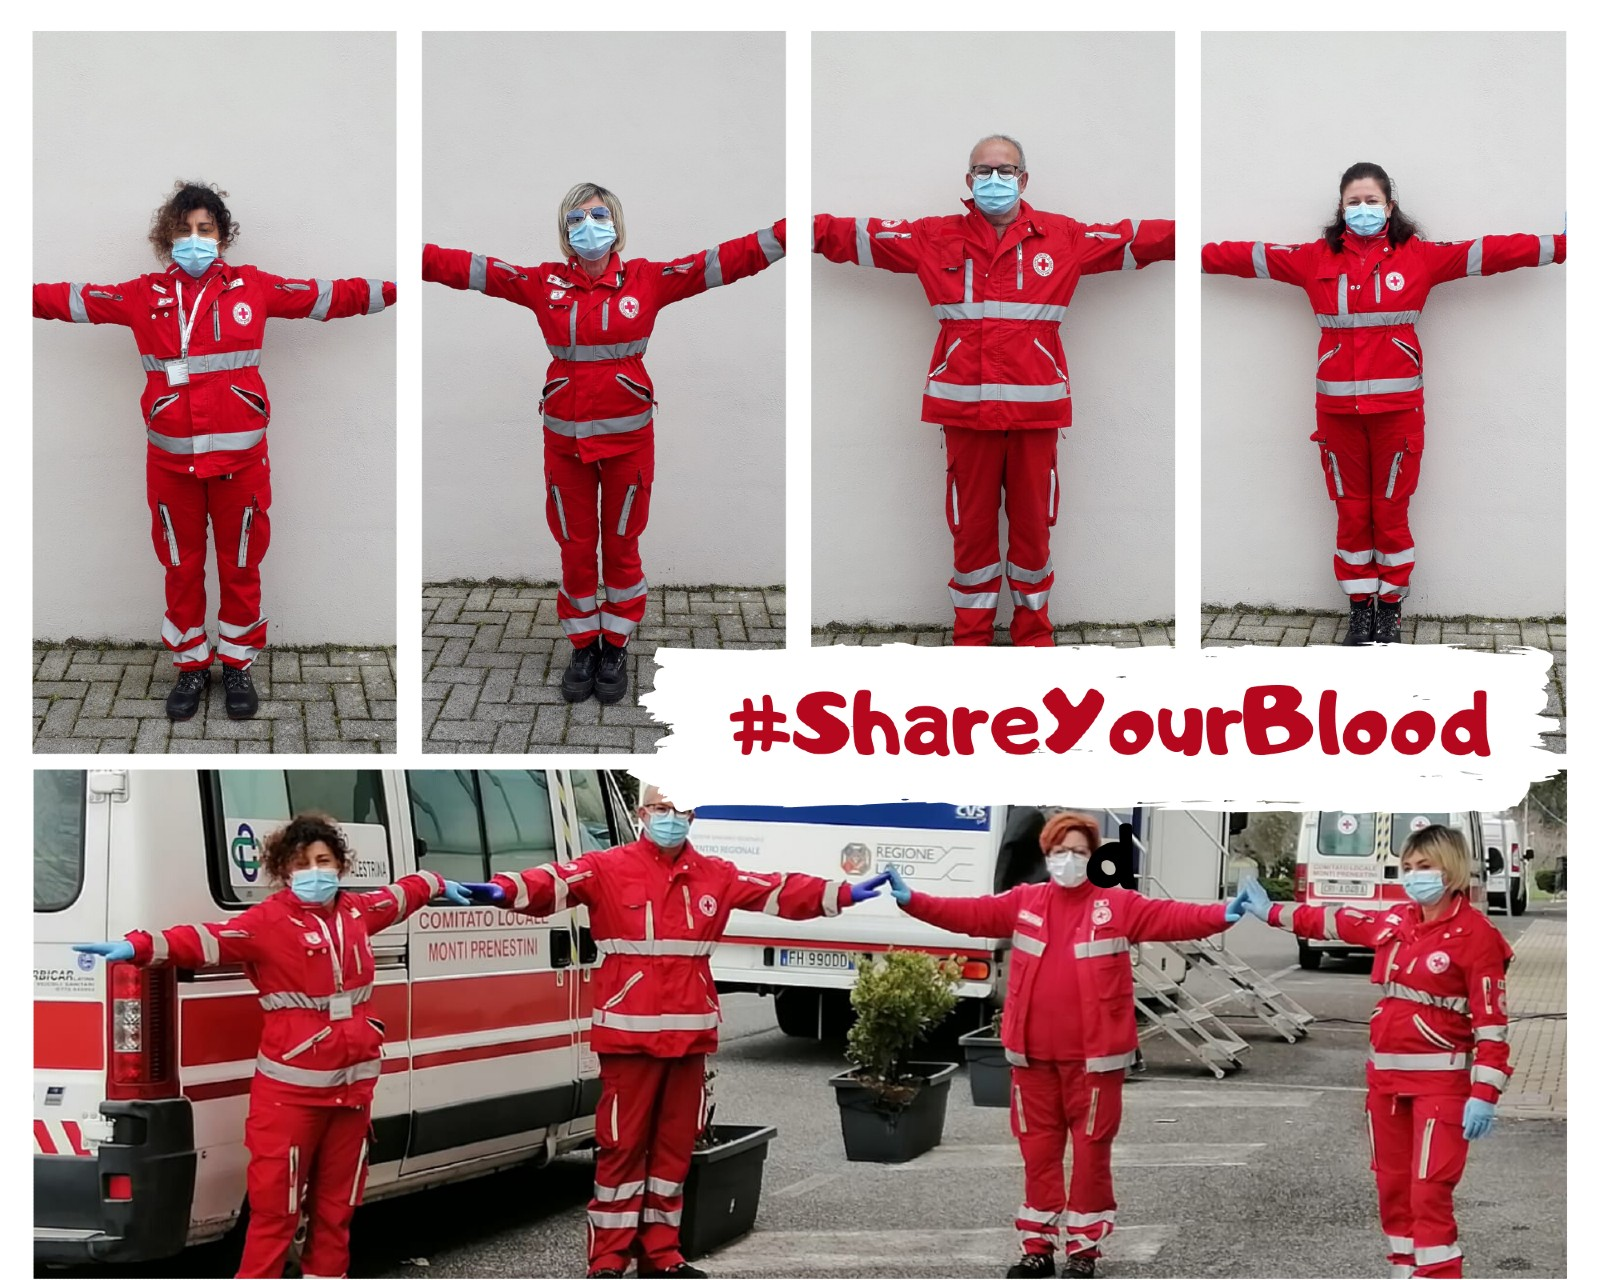 Share_Your_Blood